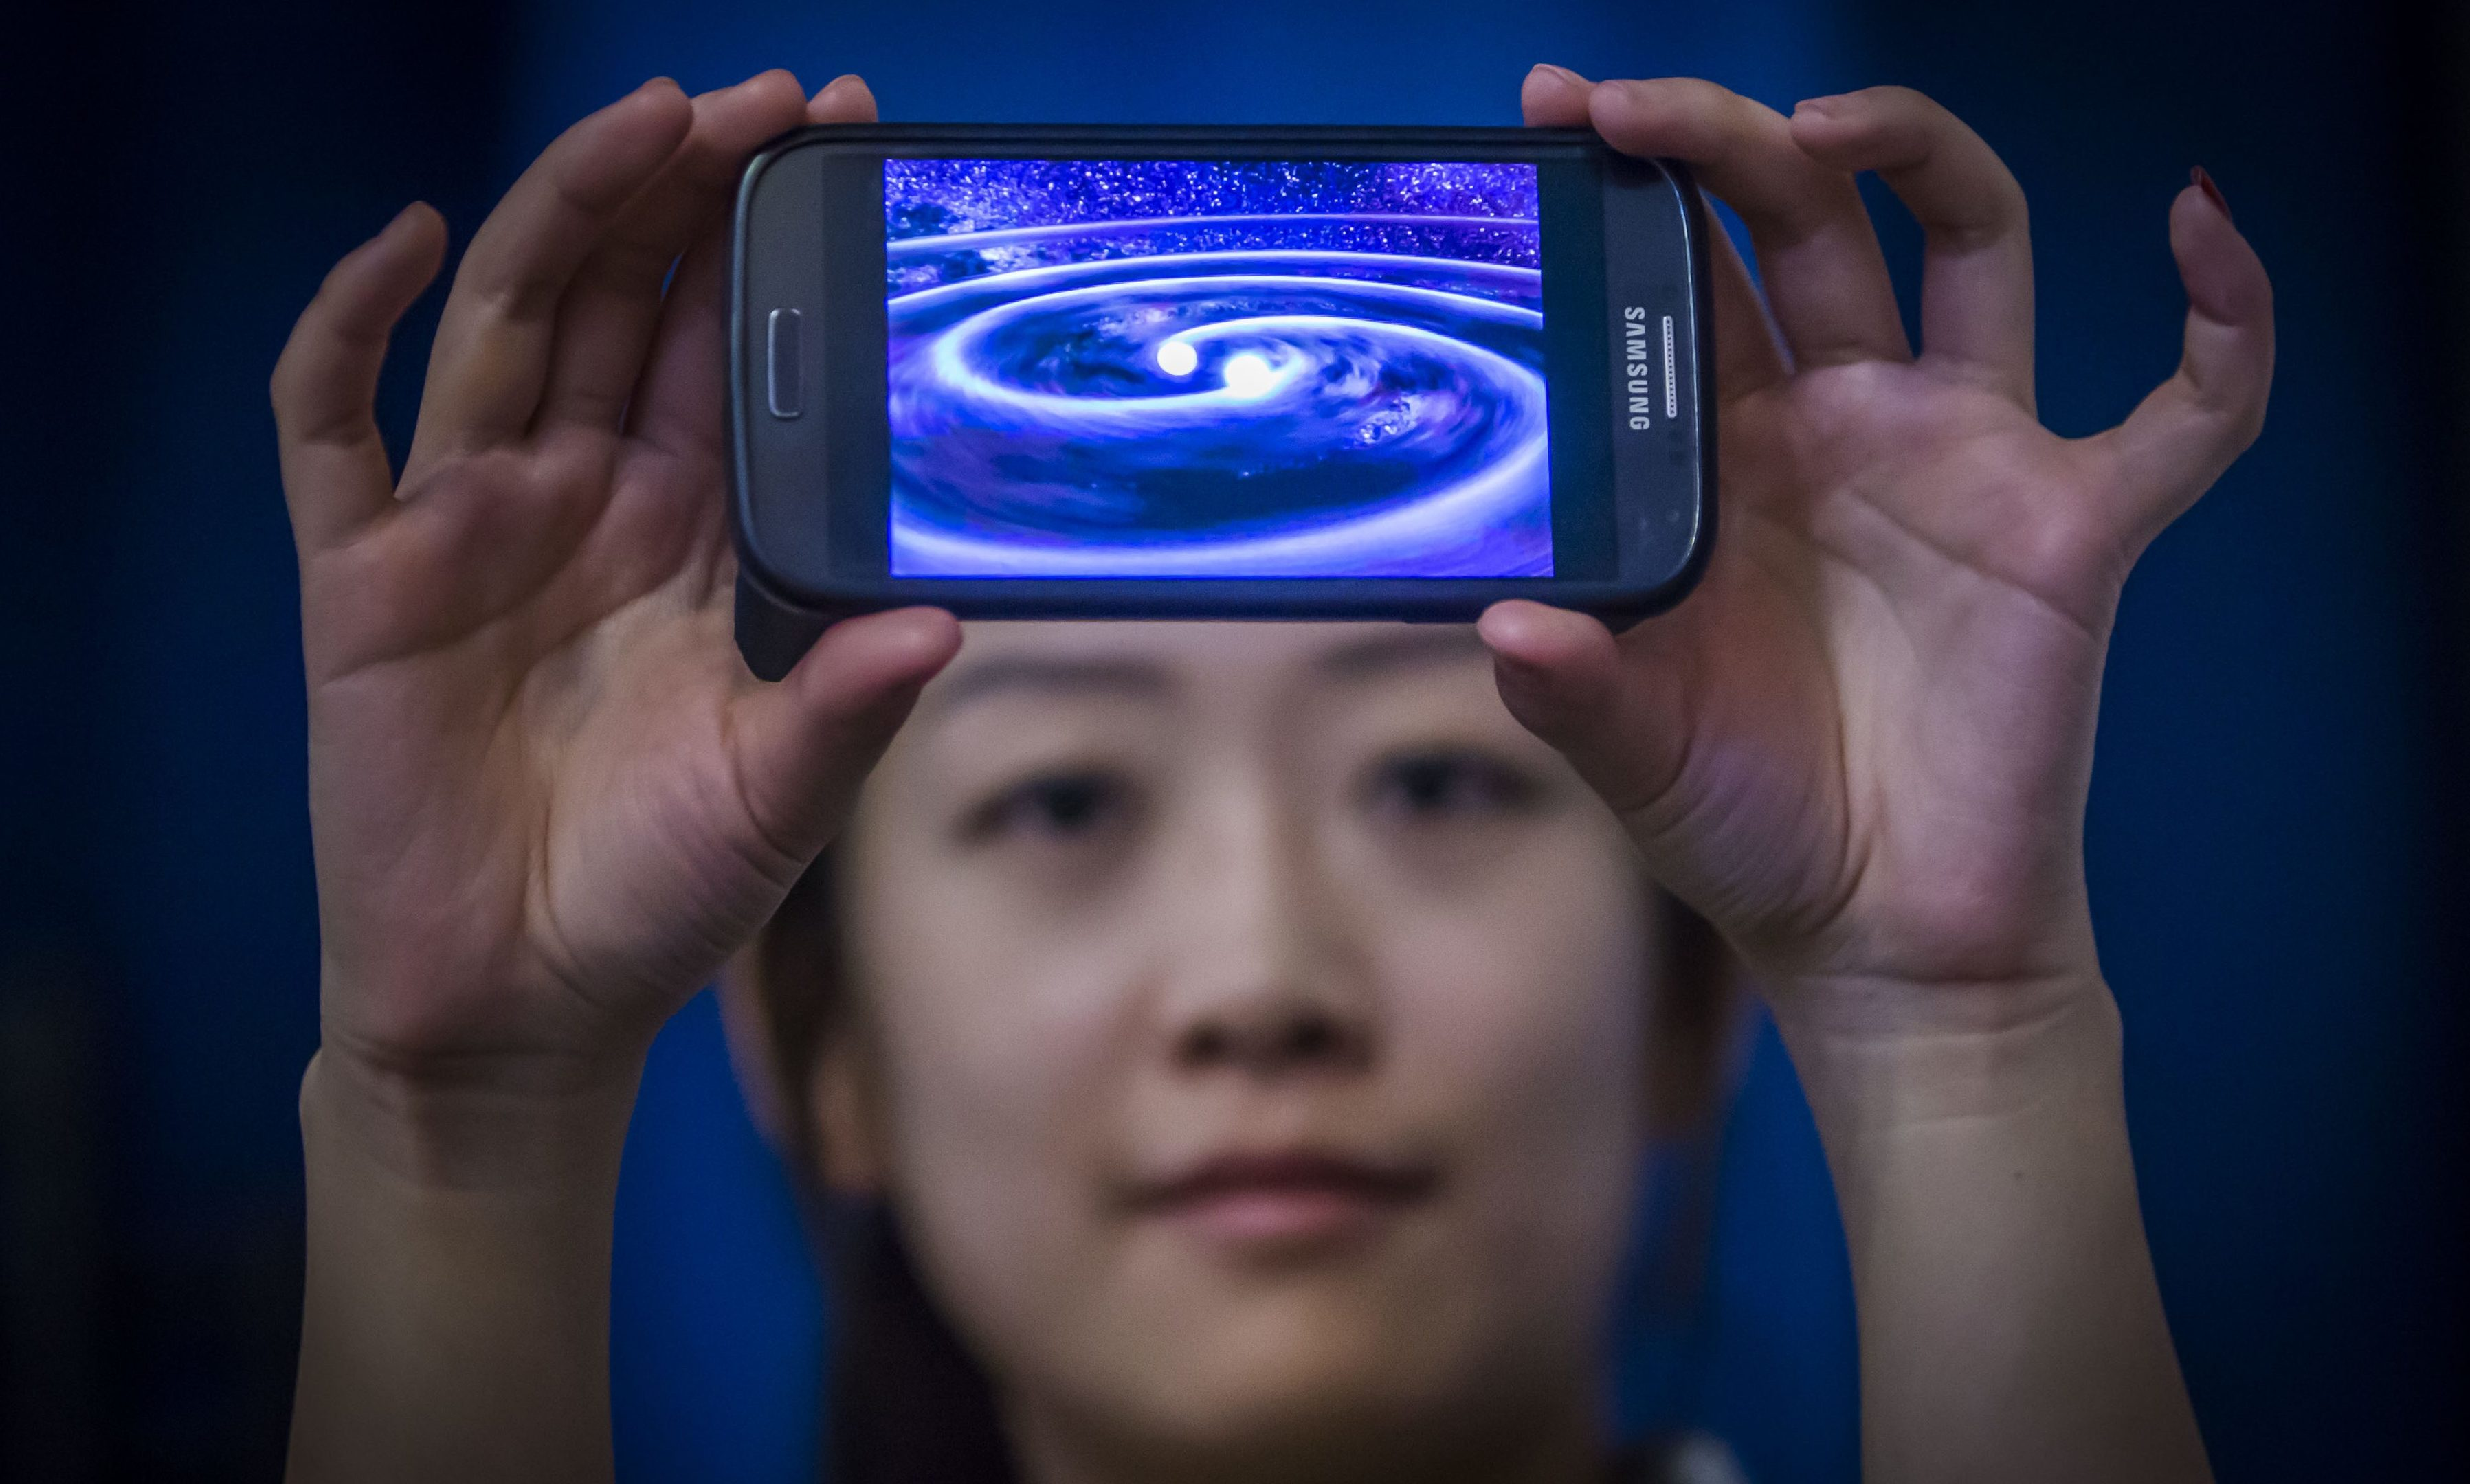 Student Muzi Li at the Institute of Gravitational Research at Glasgow University holding a phone that shows a computer simulation of gravity waves - ripples in spacetime - which have been detected by scientists a century after Albert Einstein predicted their existence.